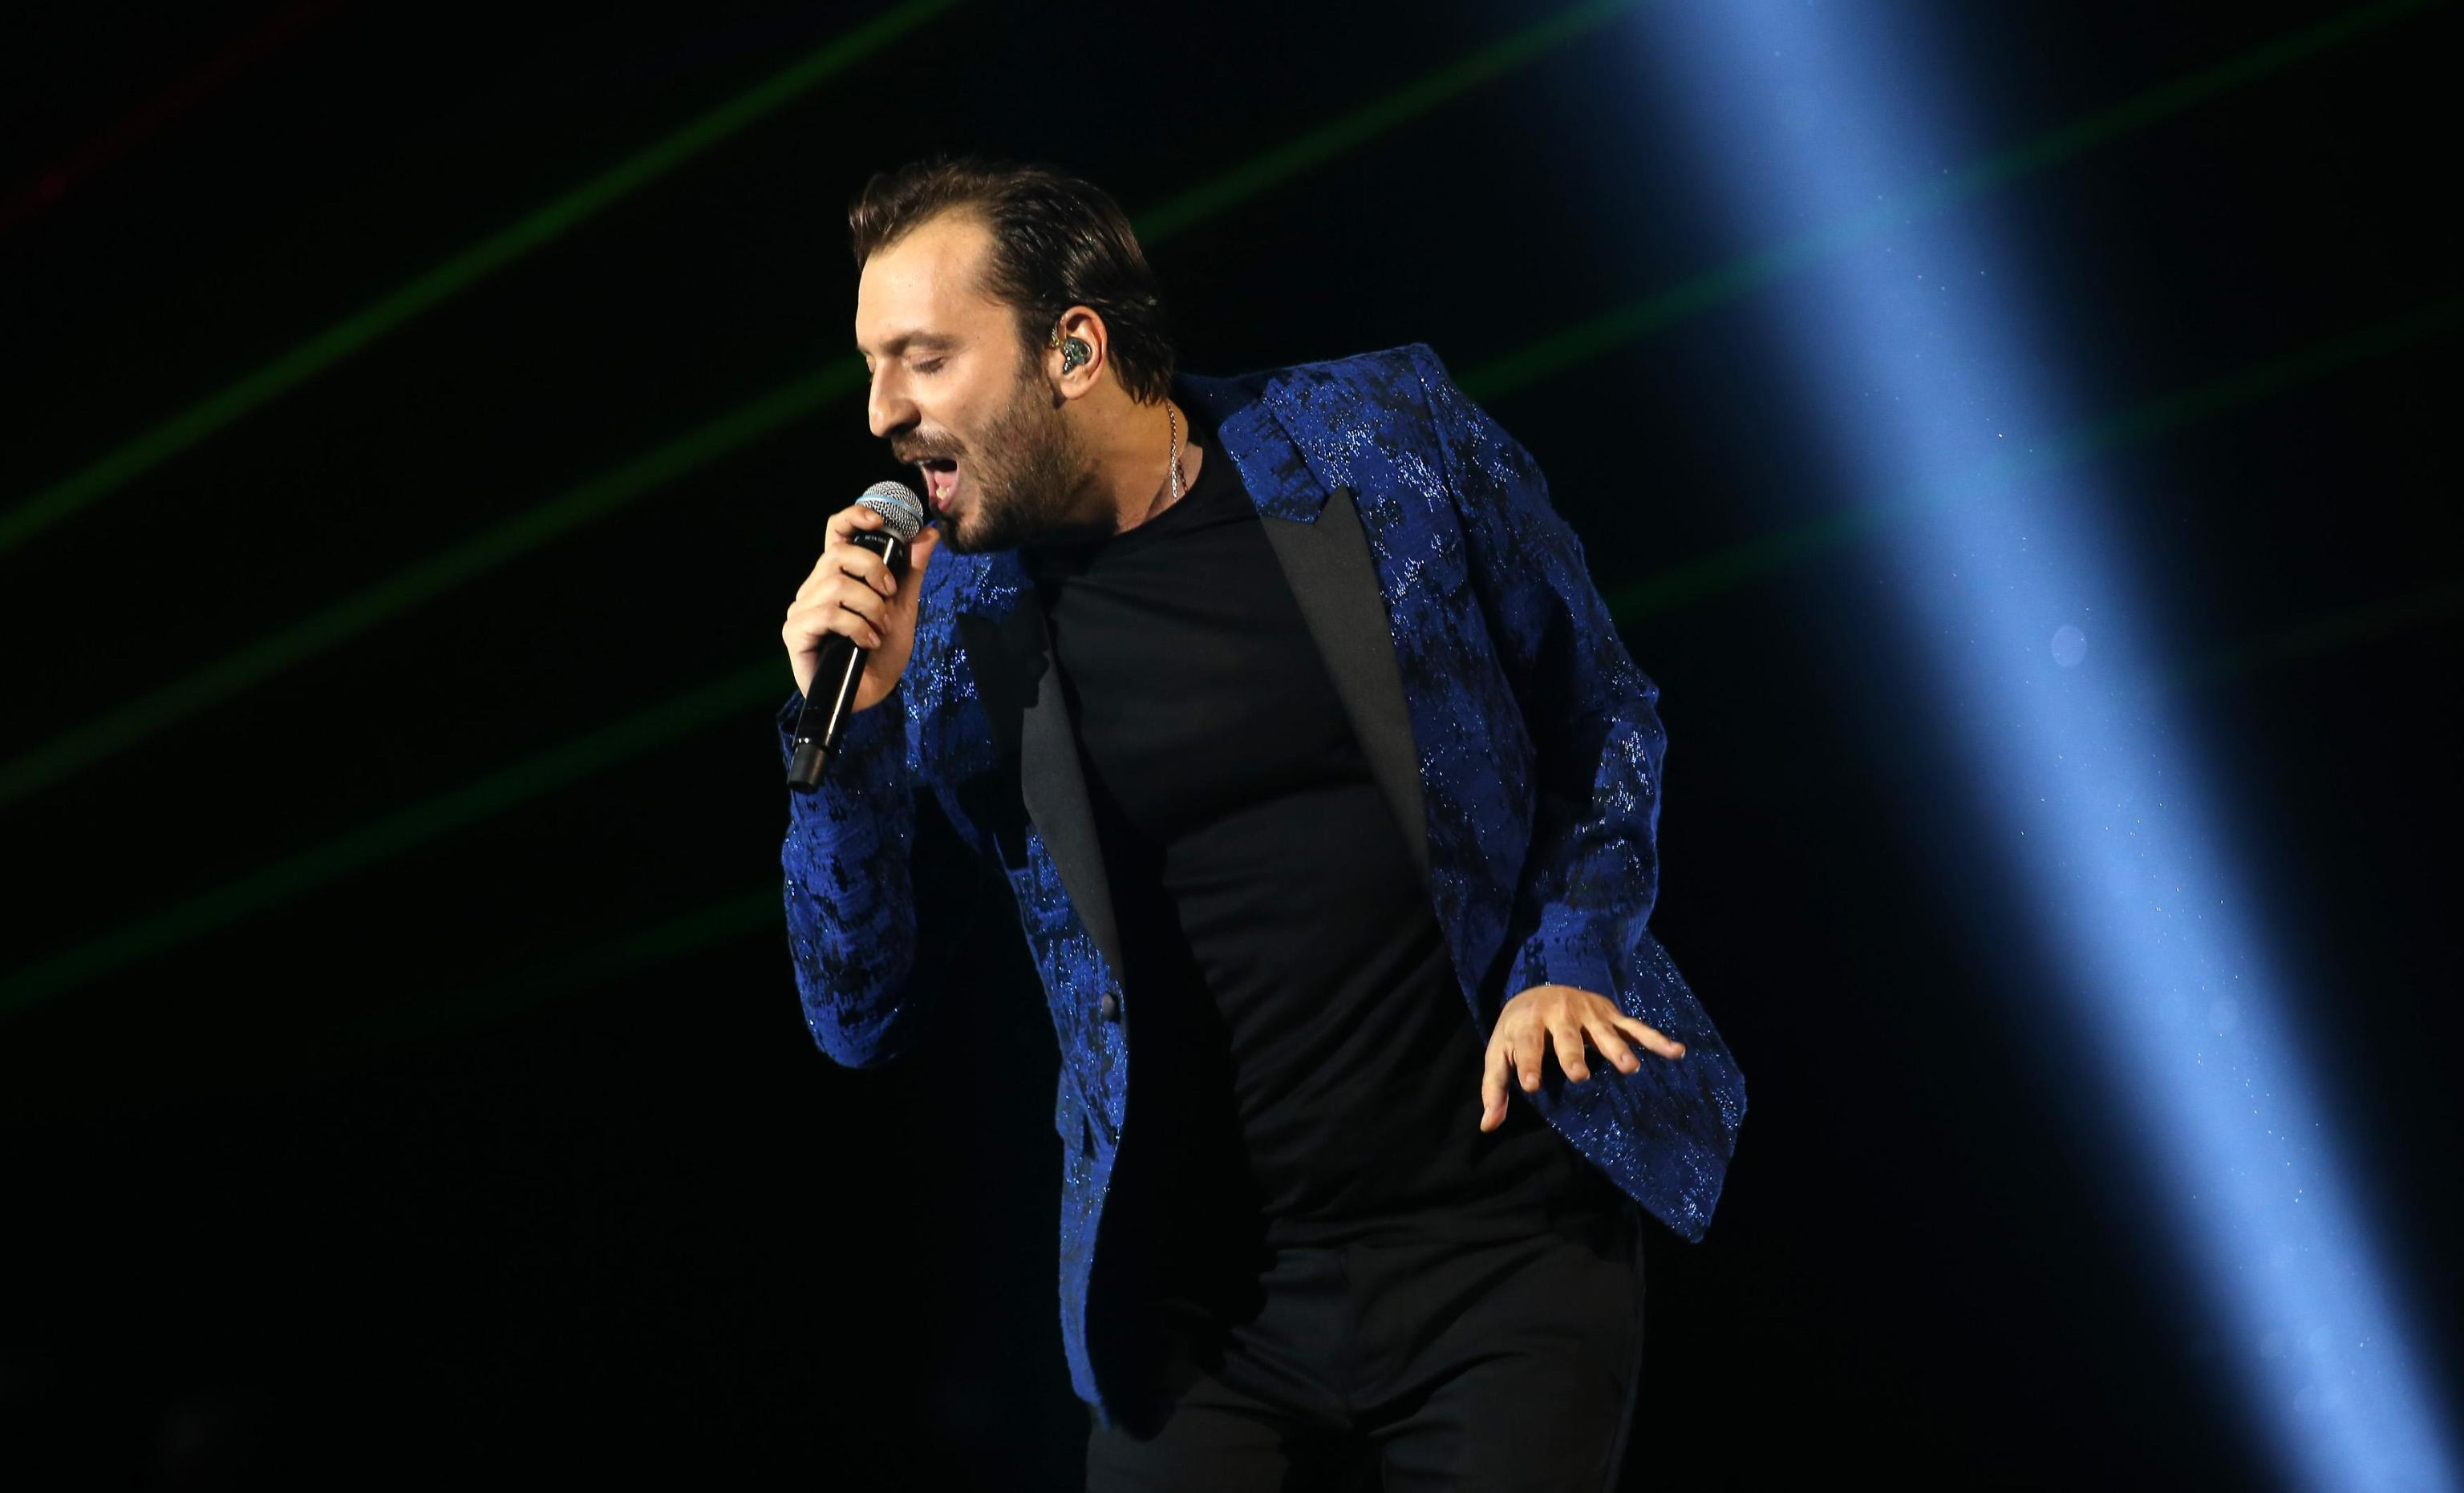 Hit parade, Cremonini subito in vetta